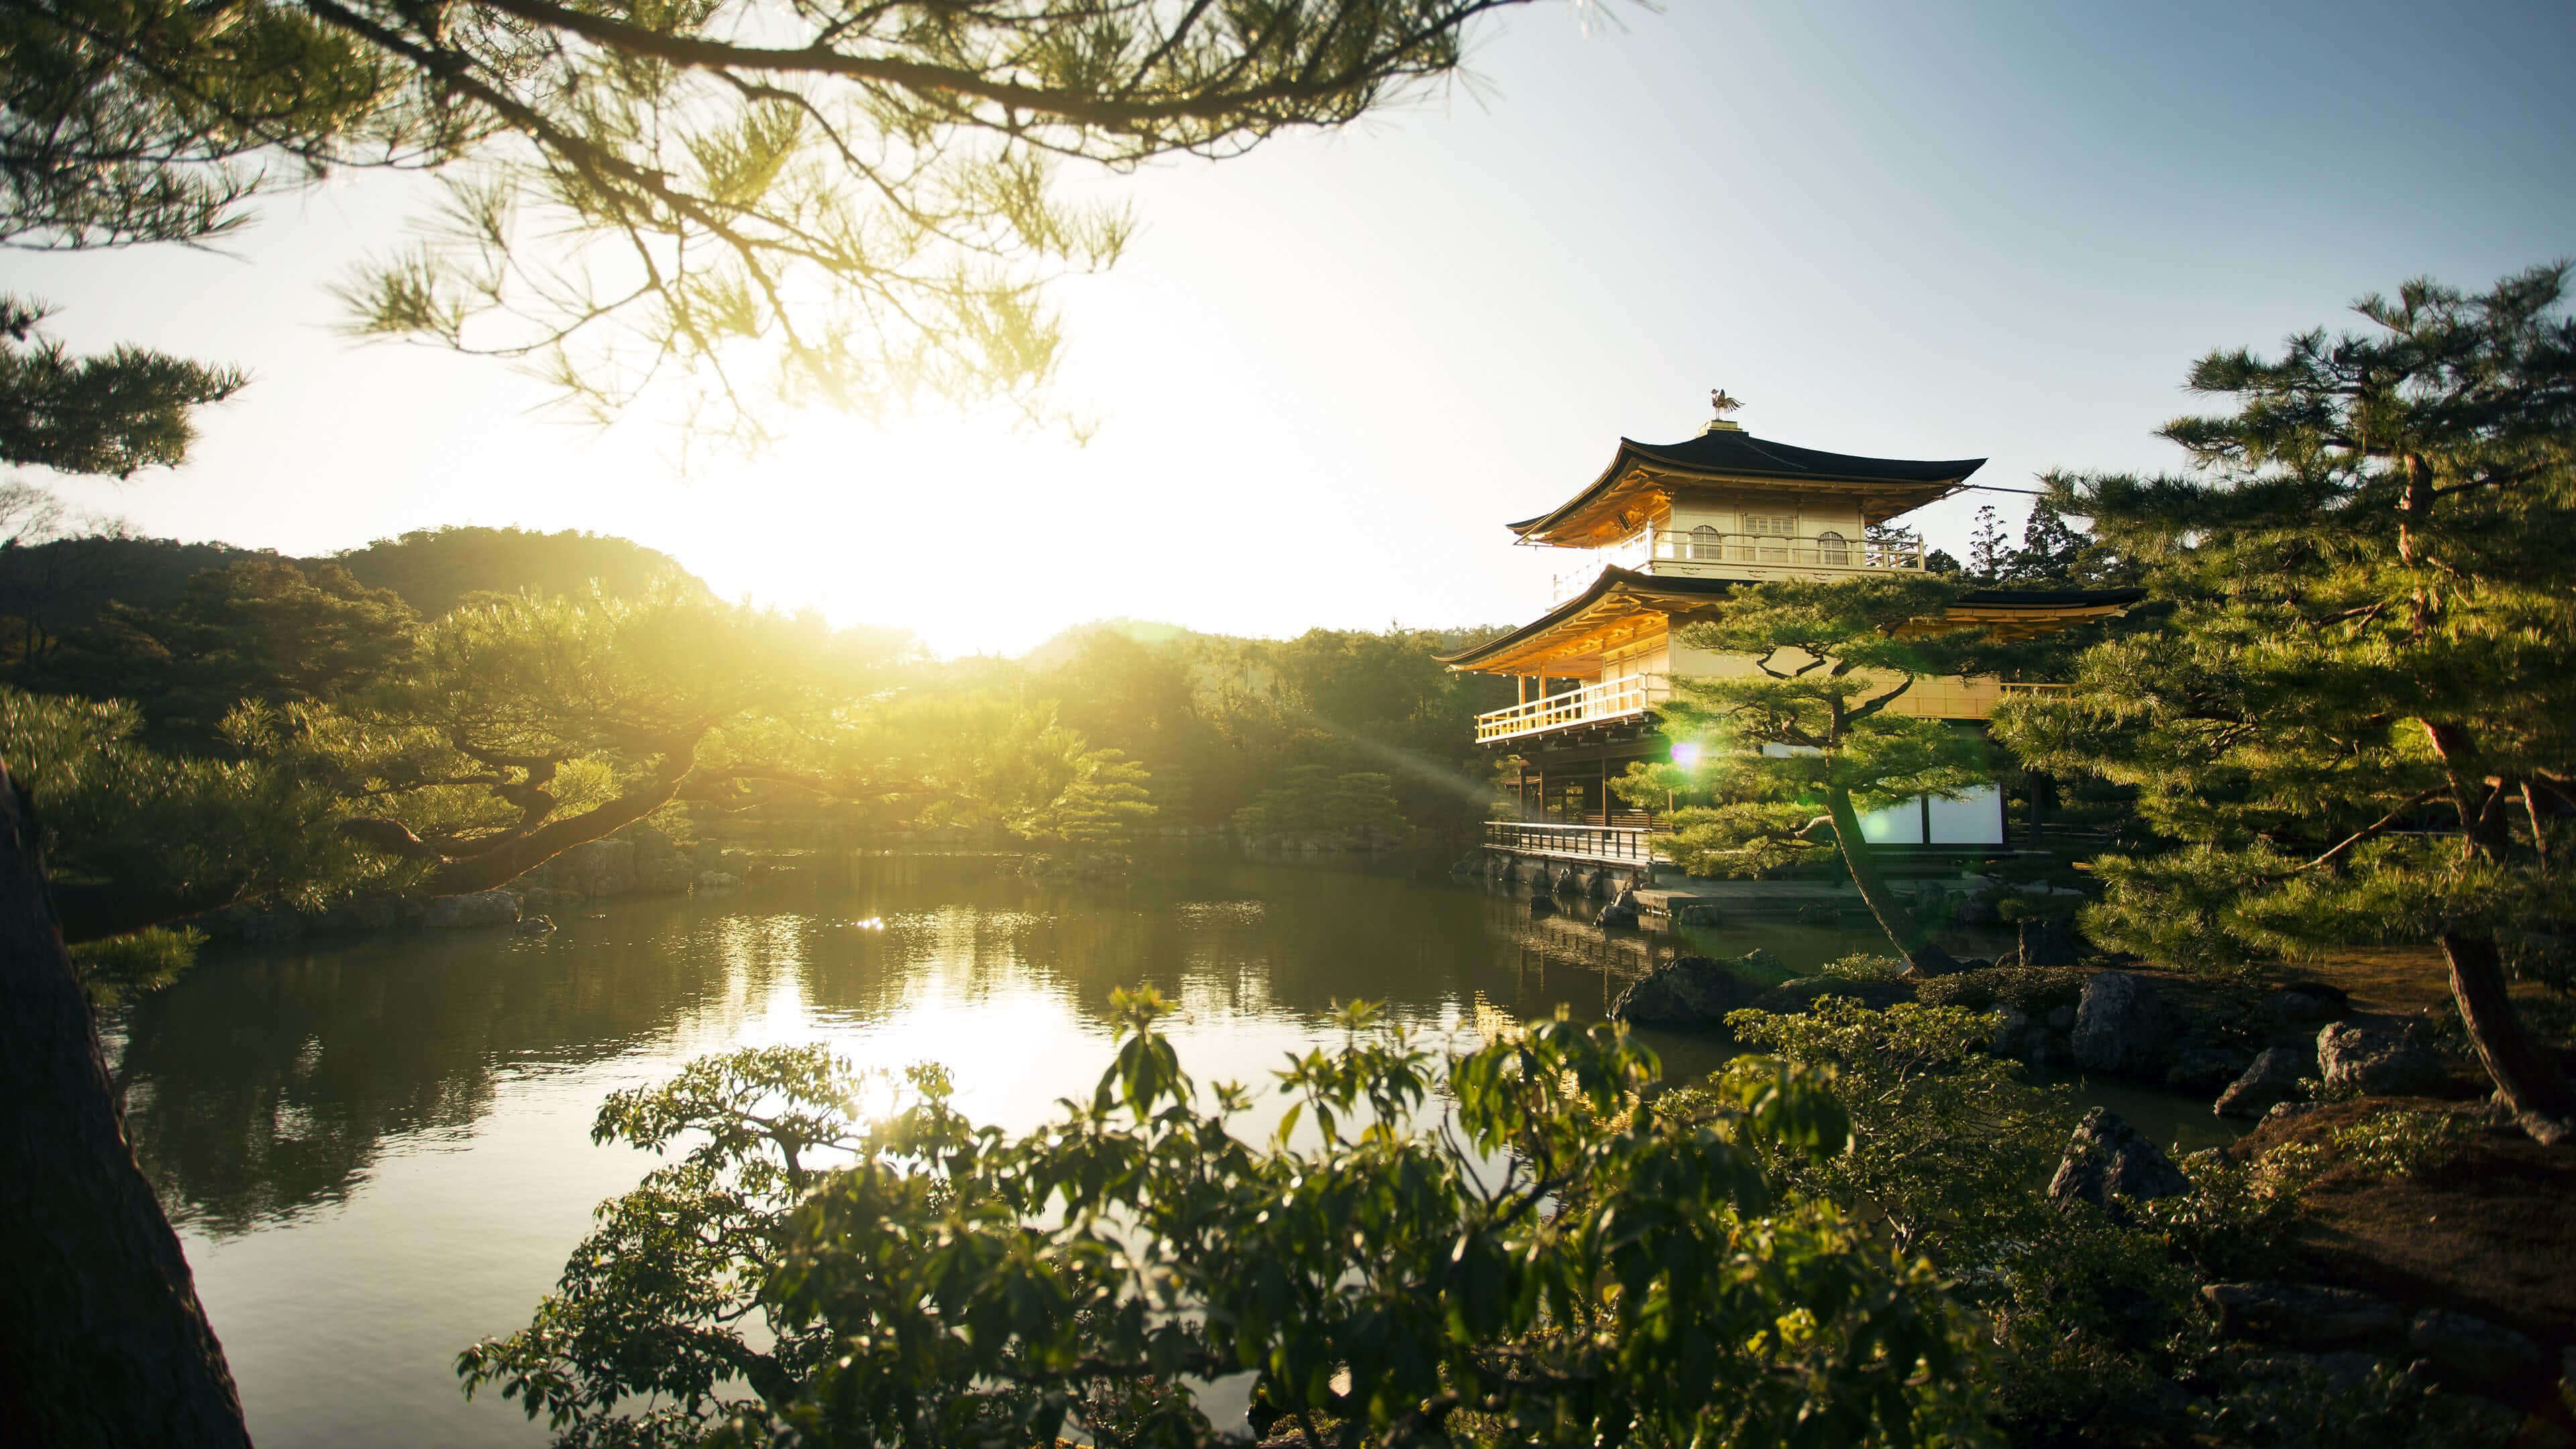 Res: 3840x2160, temple of the golden pavilion kinkaku ji kyoto japan 4k wallpaper